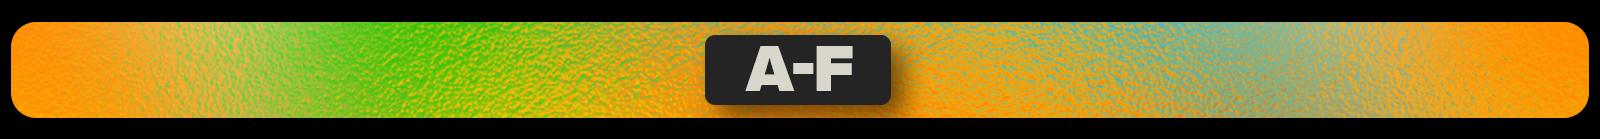 A-F (1).png